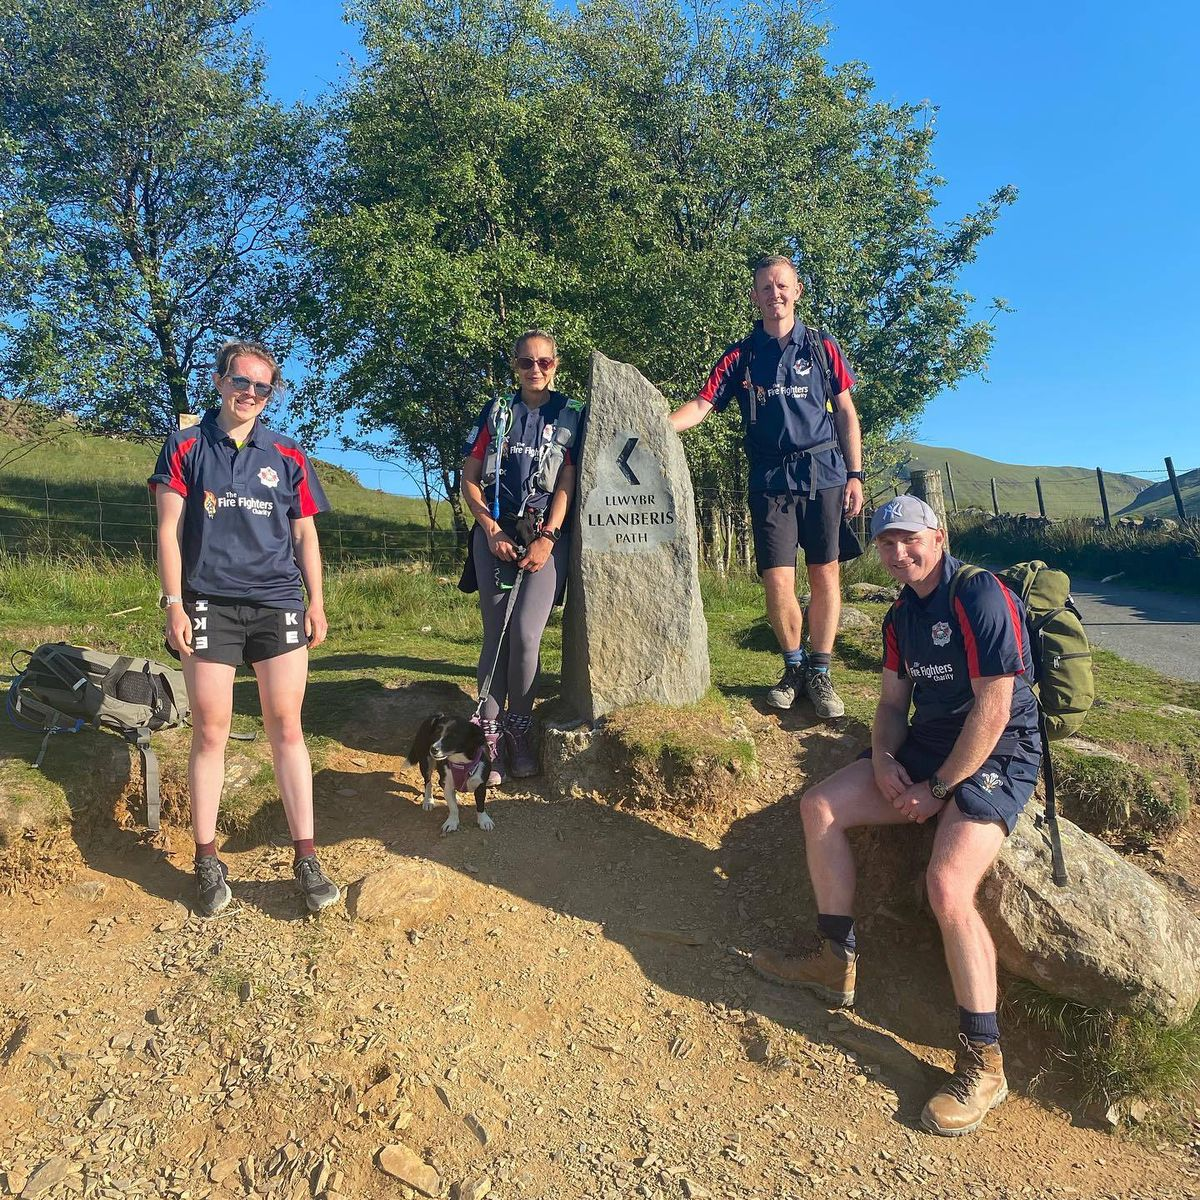 Some of the team at the start of the Llanberis Path